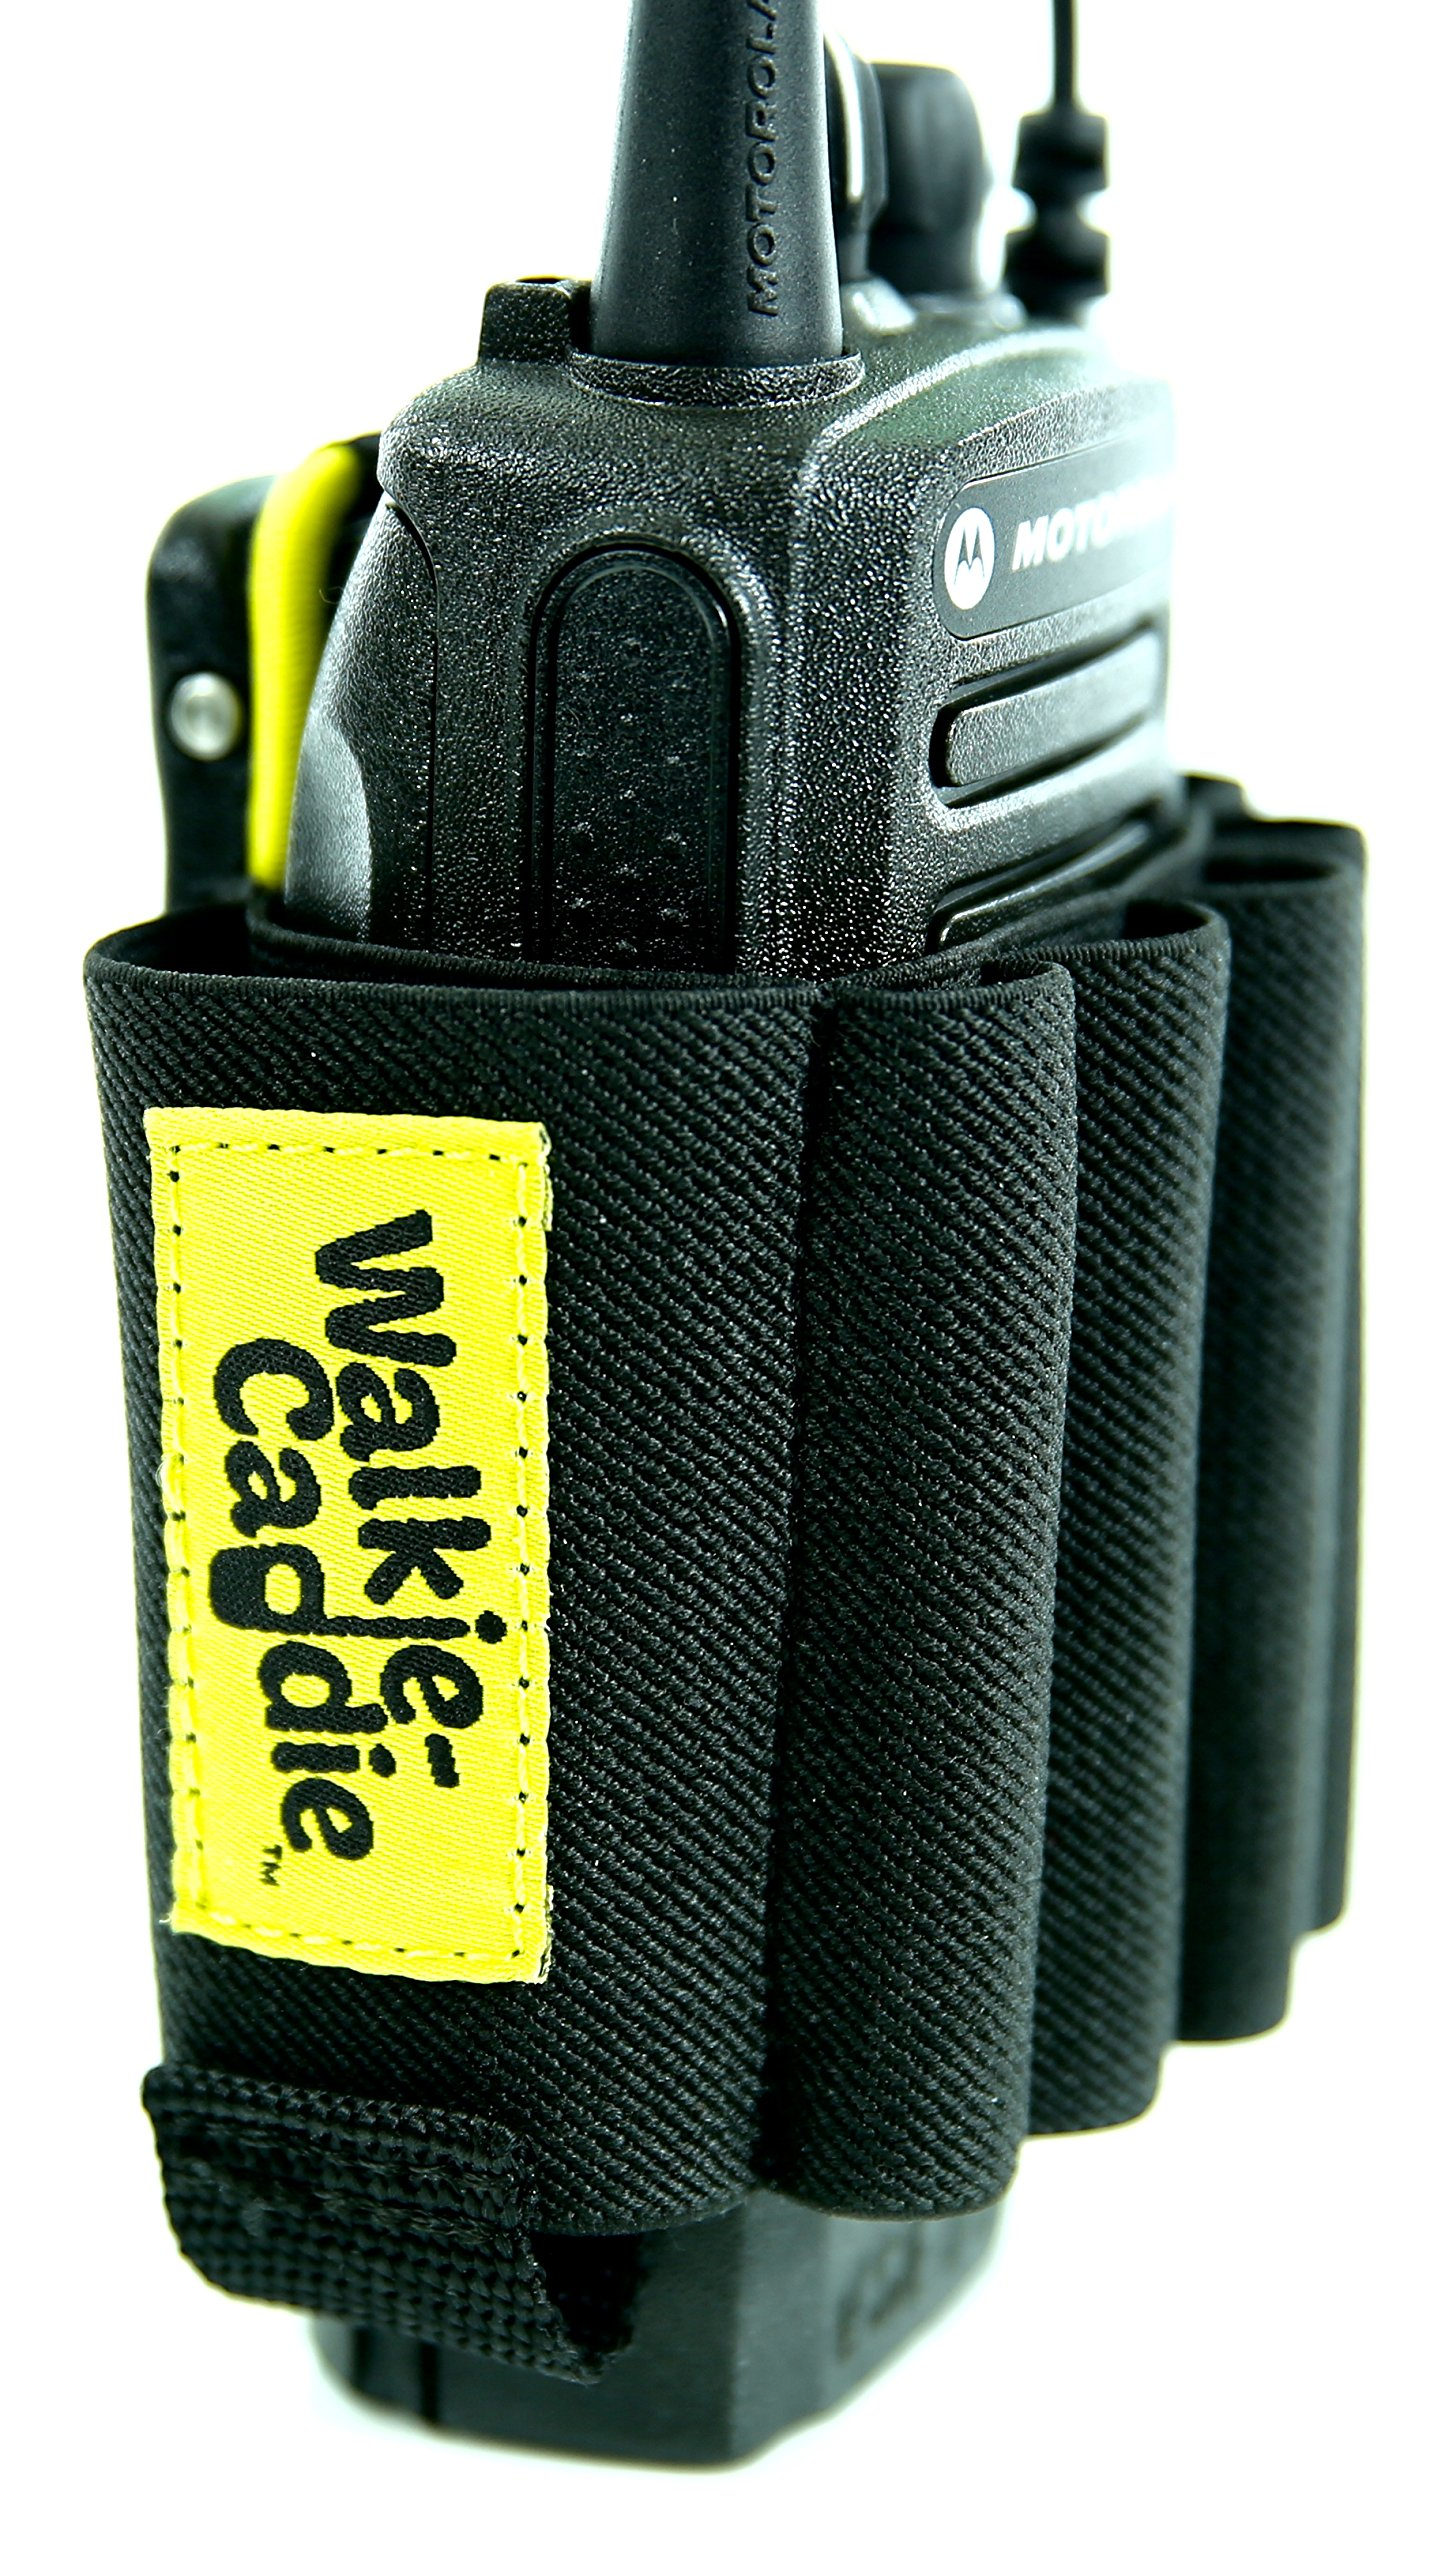 Walkie Caddie (Yellow) - Accessory Pouch for Walkie Talkies | for Motorola CP 200 and most other Walkie Talkies | Black with Yellow Bungee